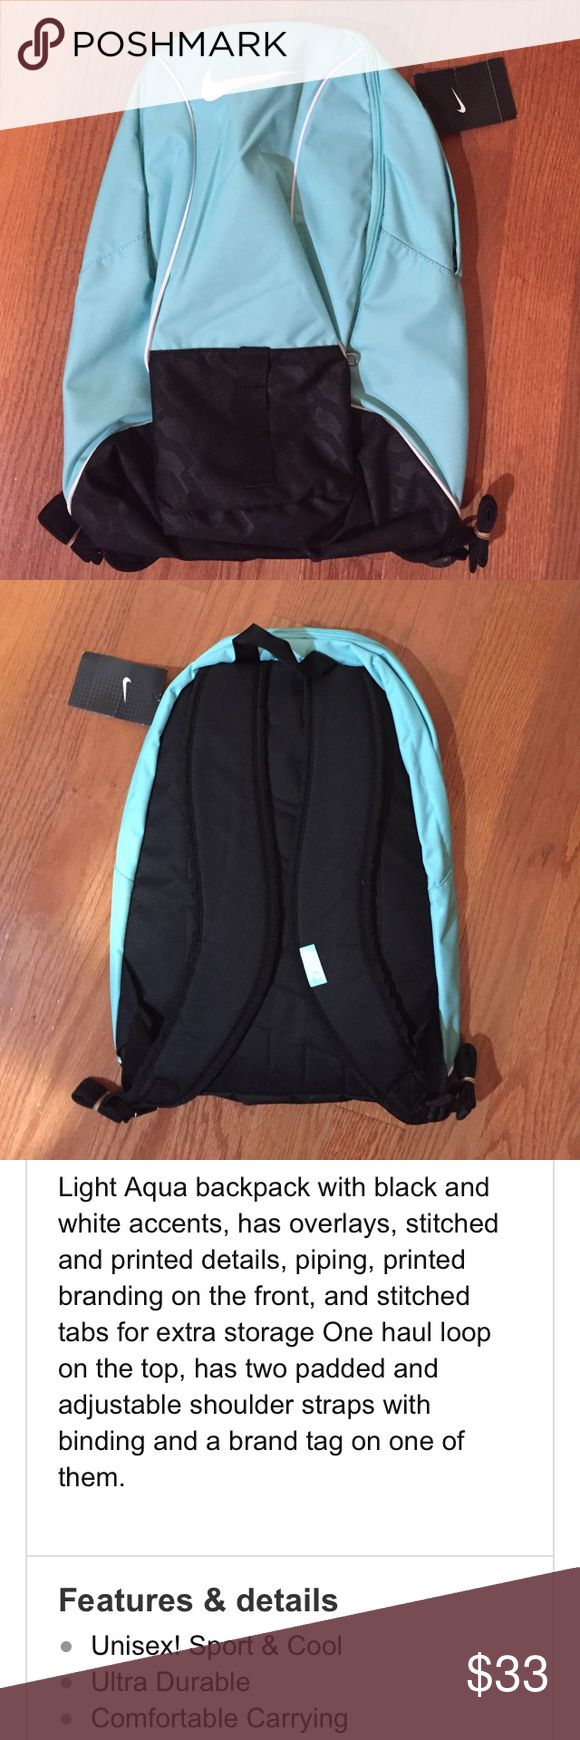 Nike Skyblue and Black backpack. NWT'S Nike Skyblue and Black backpack See. Third and fourth photo for more details. Nike Bags Backpacks